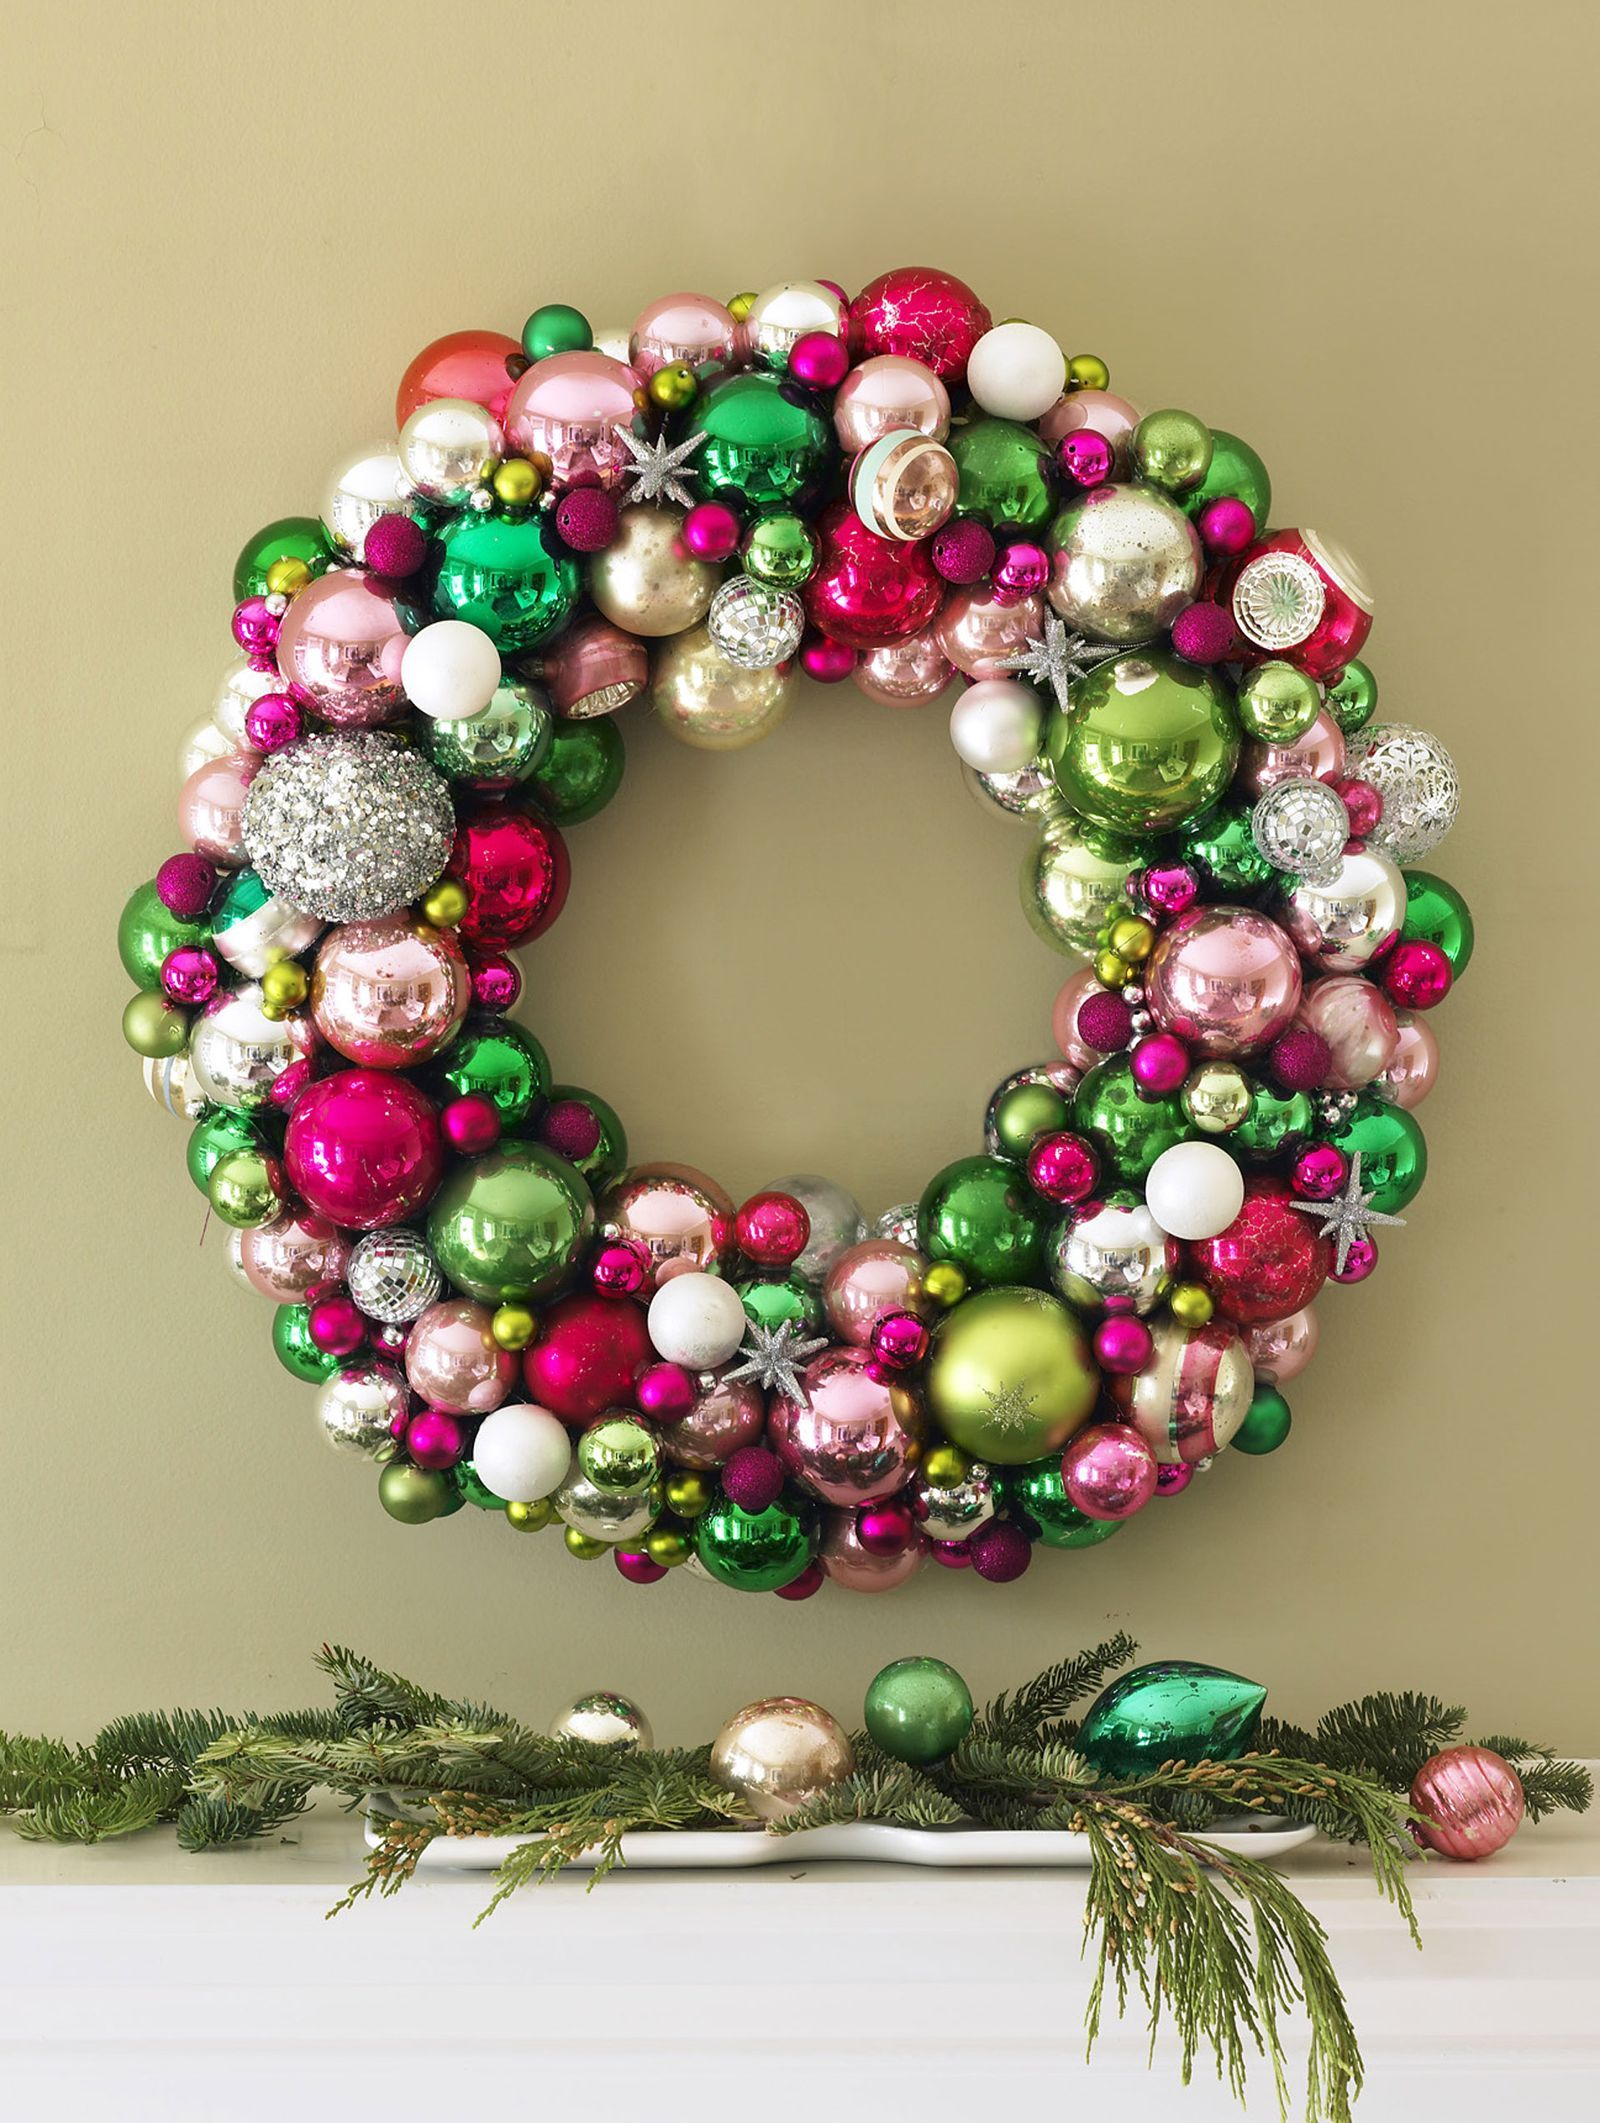 70 Striking Christmas Wreaths To Make Your Front Door As Merry As Can Be Christmas Wreaths Diy Christmas Wreaths To Make Christmas Decorations Wreaths